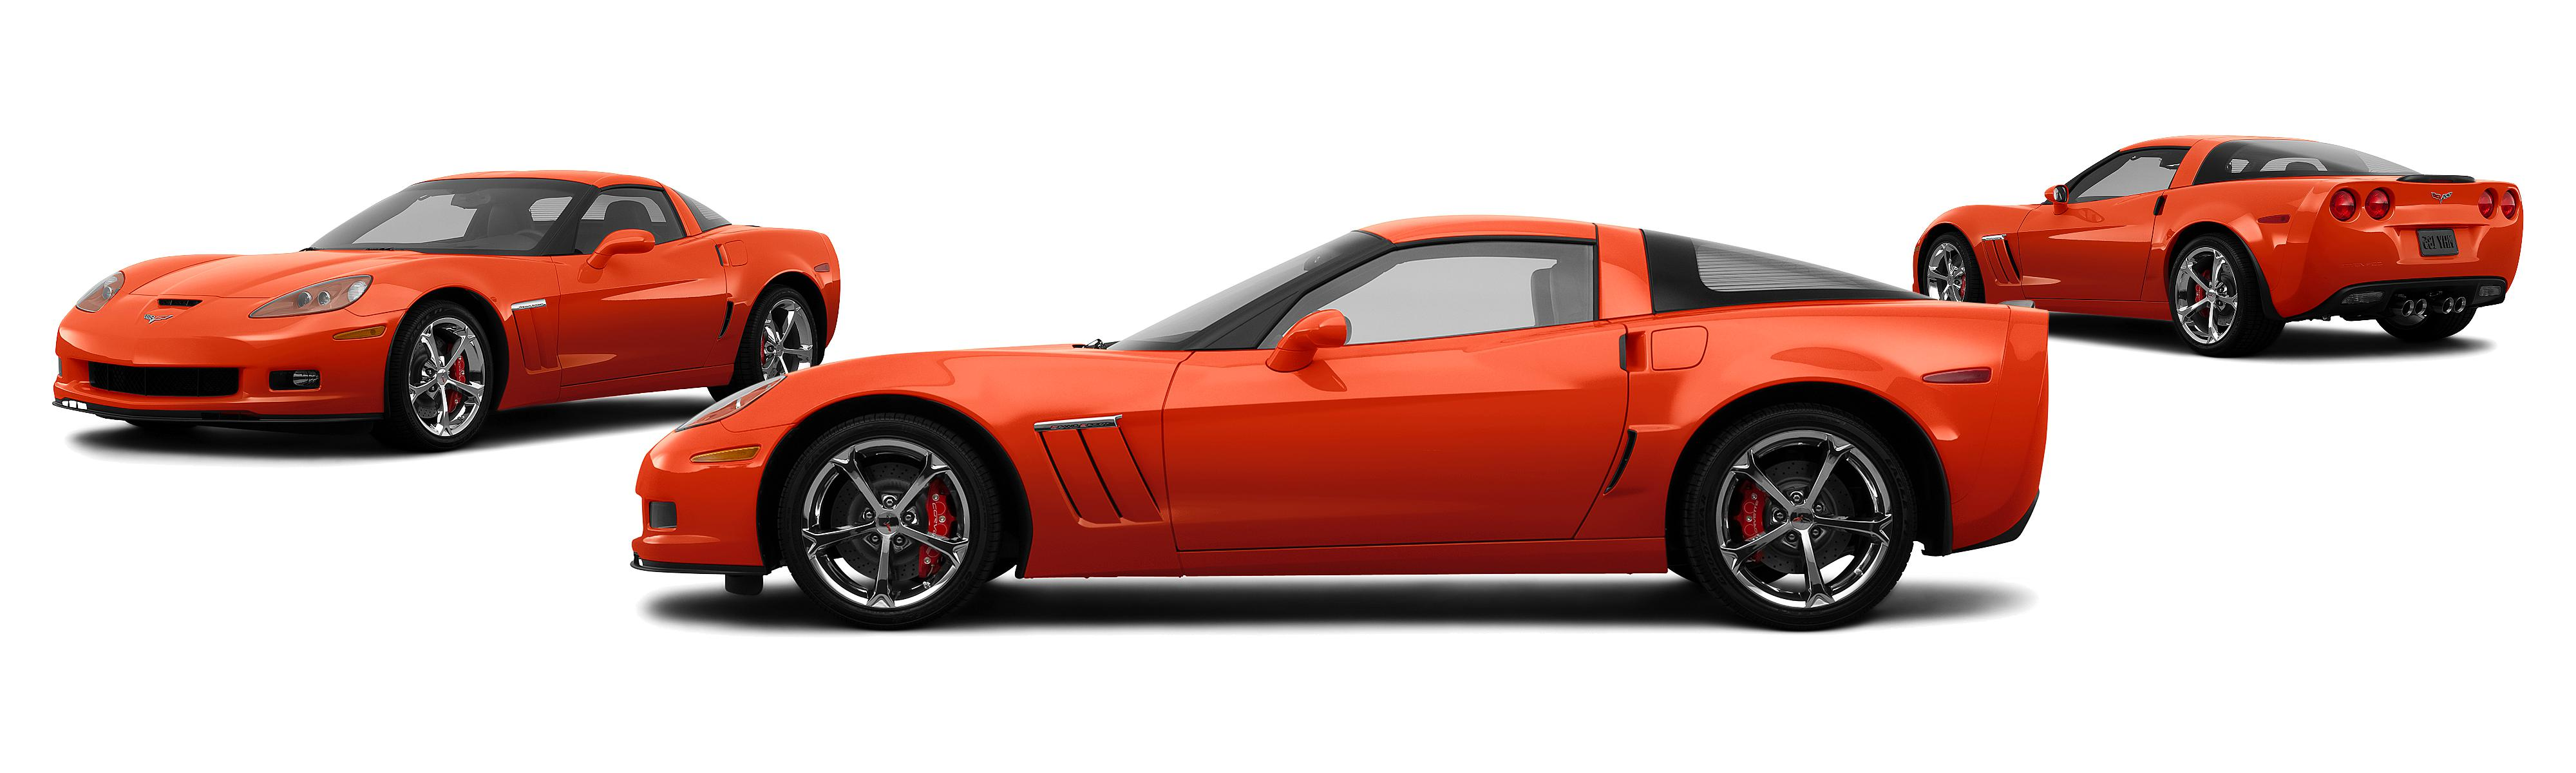 Chevrolet Corvette Z Grand Sport Dr Coupe W Lt Research Groovecar